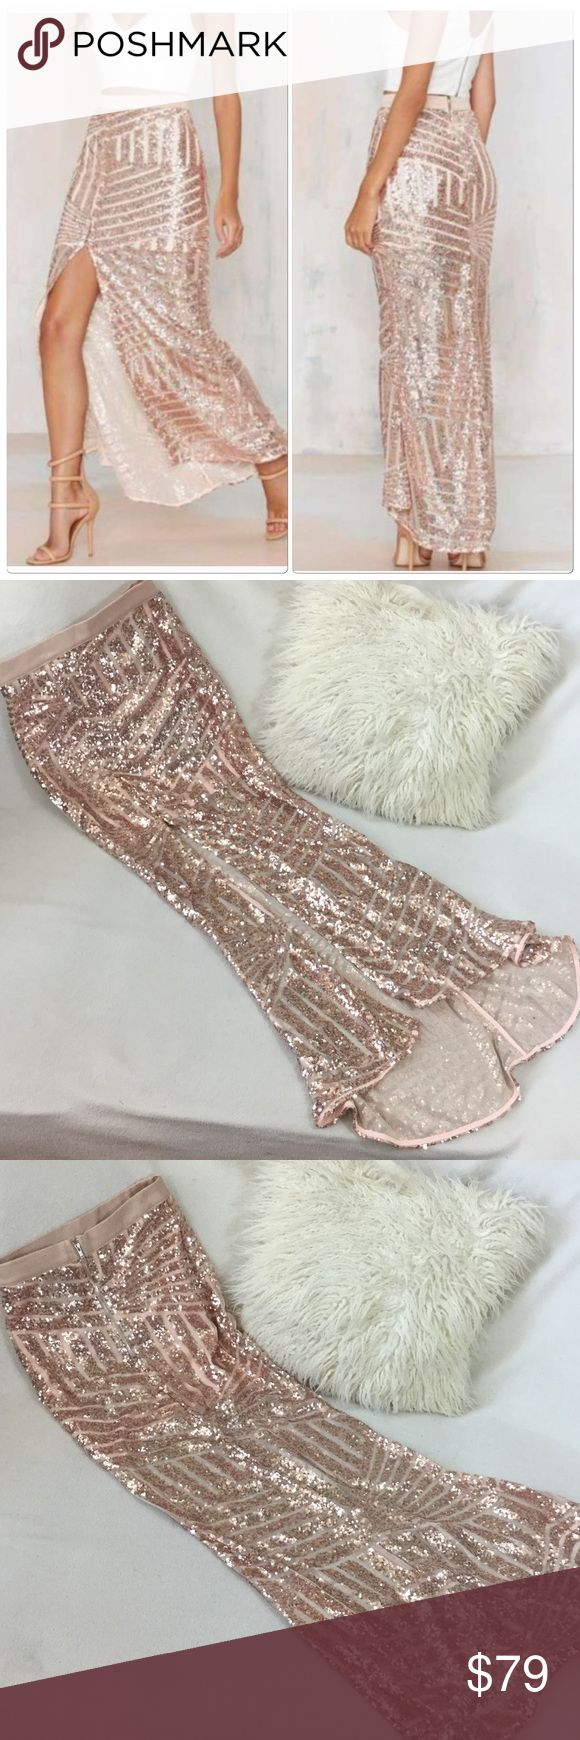 "Nasty Gal BRAND NEW Blush rose gold sequin skirt Rise of Dawn for Nasty Gal BRAND NEW Blush rose gold sequin skirt. This is absolutely stunning with the longer back and slit in the front. Lined mini skirt underneath   Runs true size XS. Wonderful condition never worn. Measures at back length 42"" front is 35"" long waist is 11 3/4"" across. Skirt is stretchy 816-775 Nasty Gal Skirts"